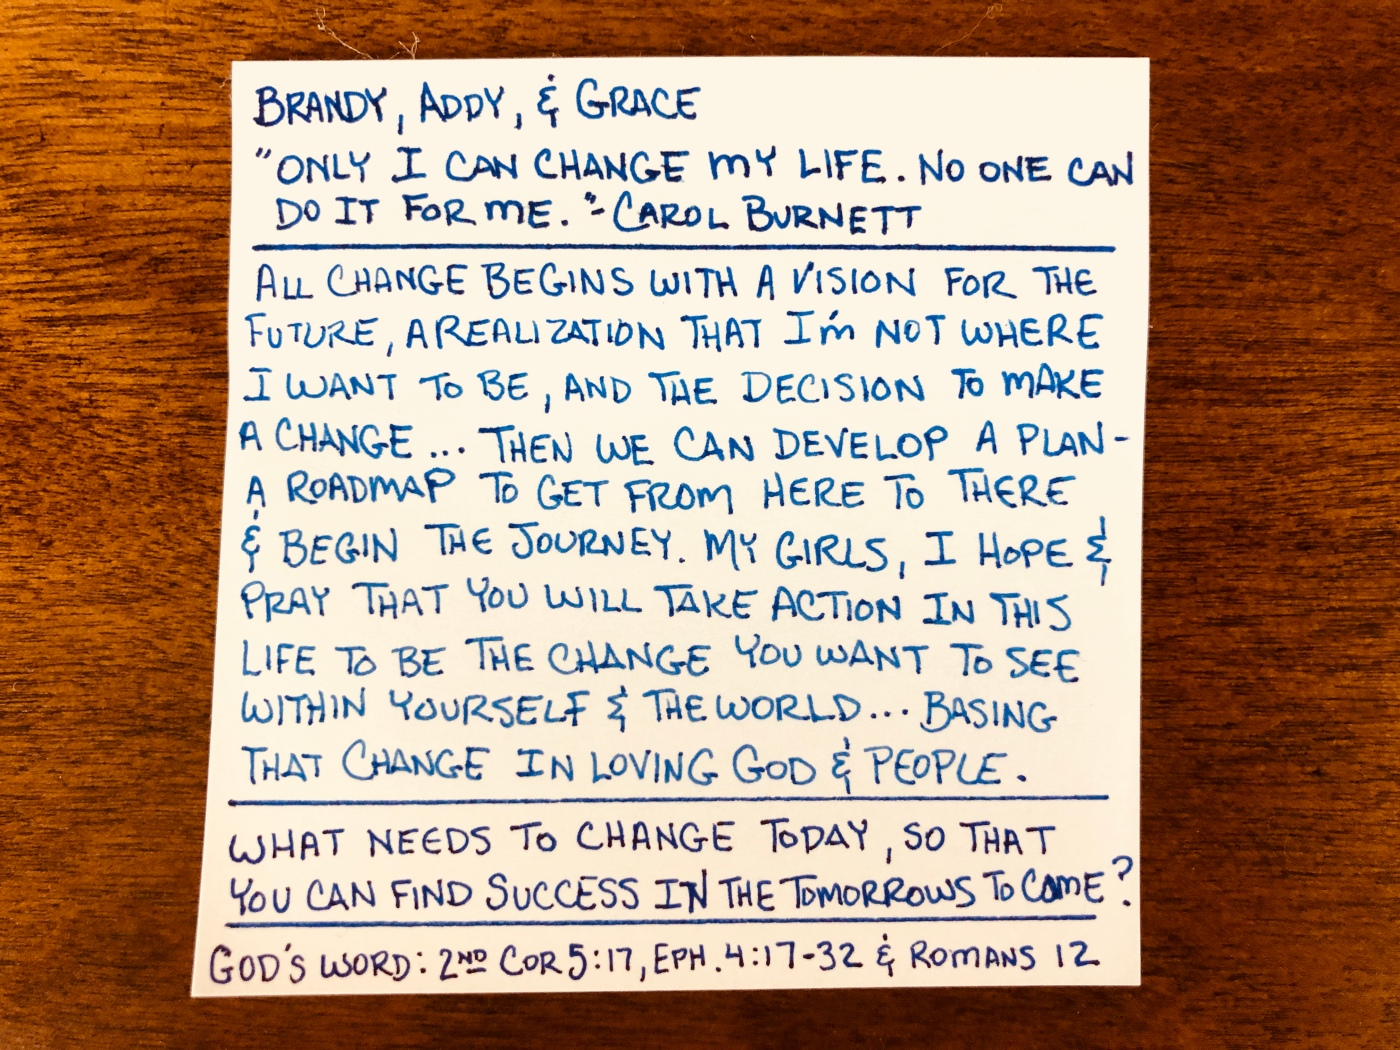 Only I Can Change My Life No One Can Do It For Me - Carol Burnett